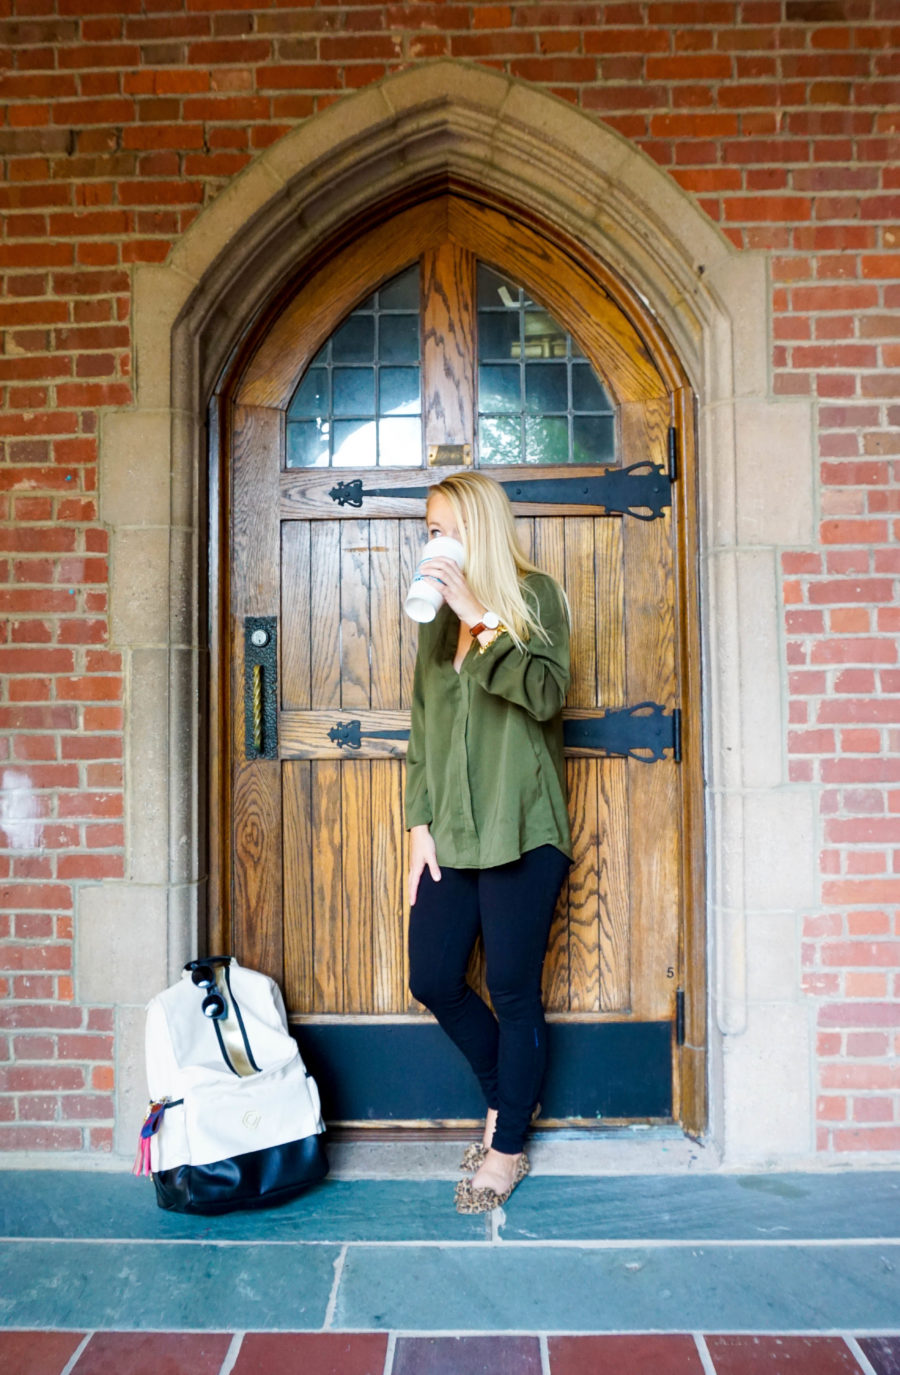 amy-littleson-from-i-believe-in-pink-wearing-madeline-and-company-backpack-green-tobi-blouse-and-leopard-flats-at-the-university-of-richmond-10